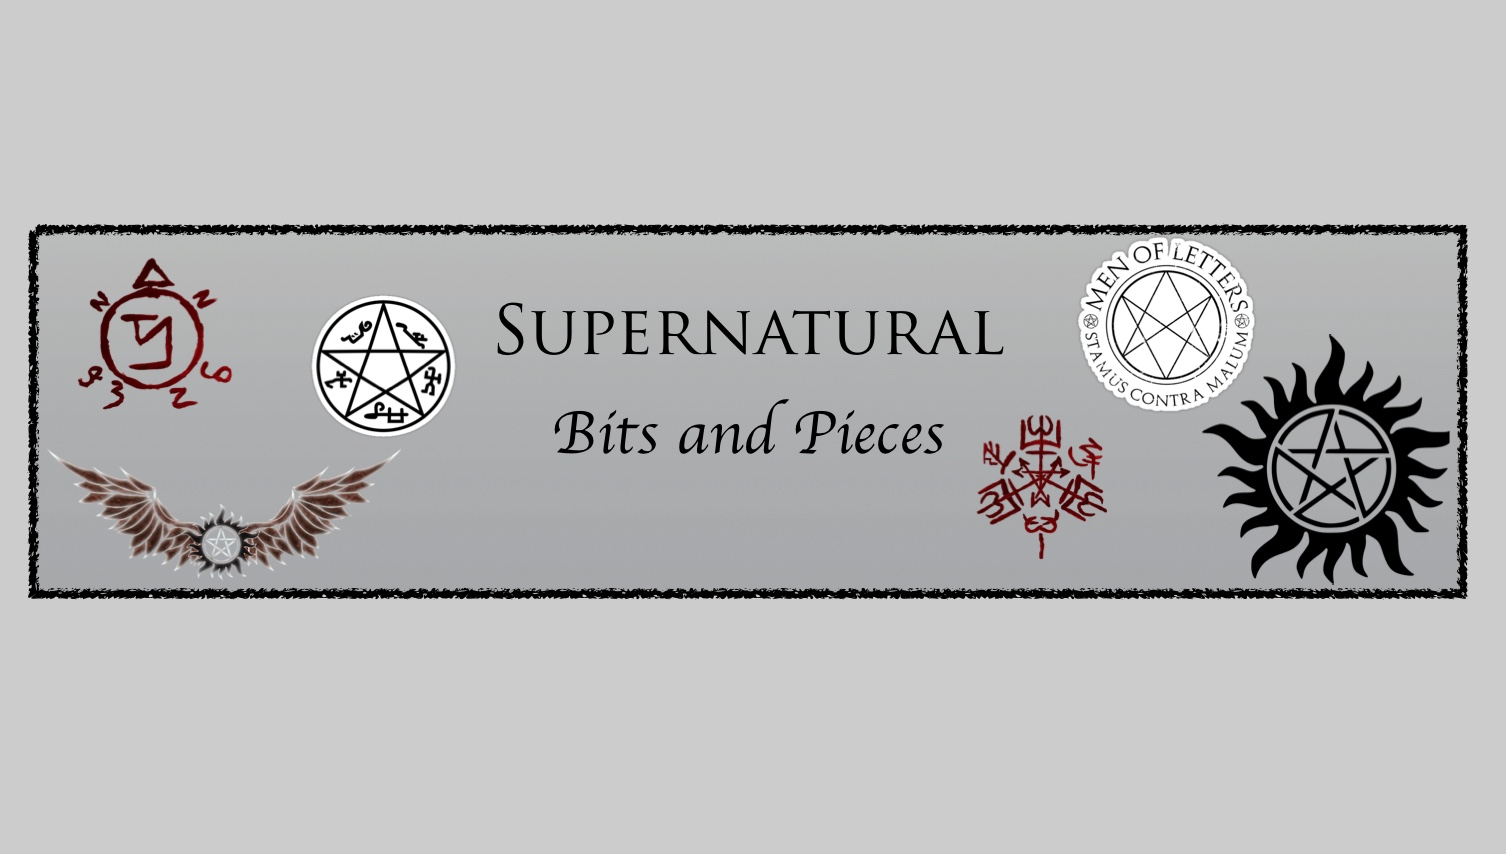 Supernatural Bits & Pieces October 22, 2016